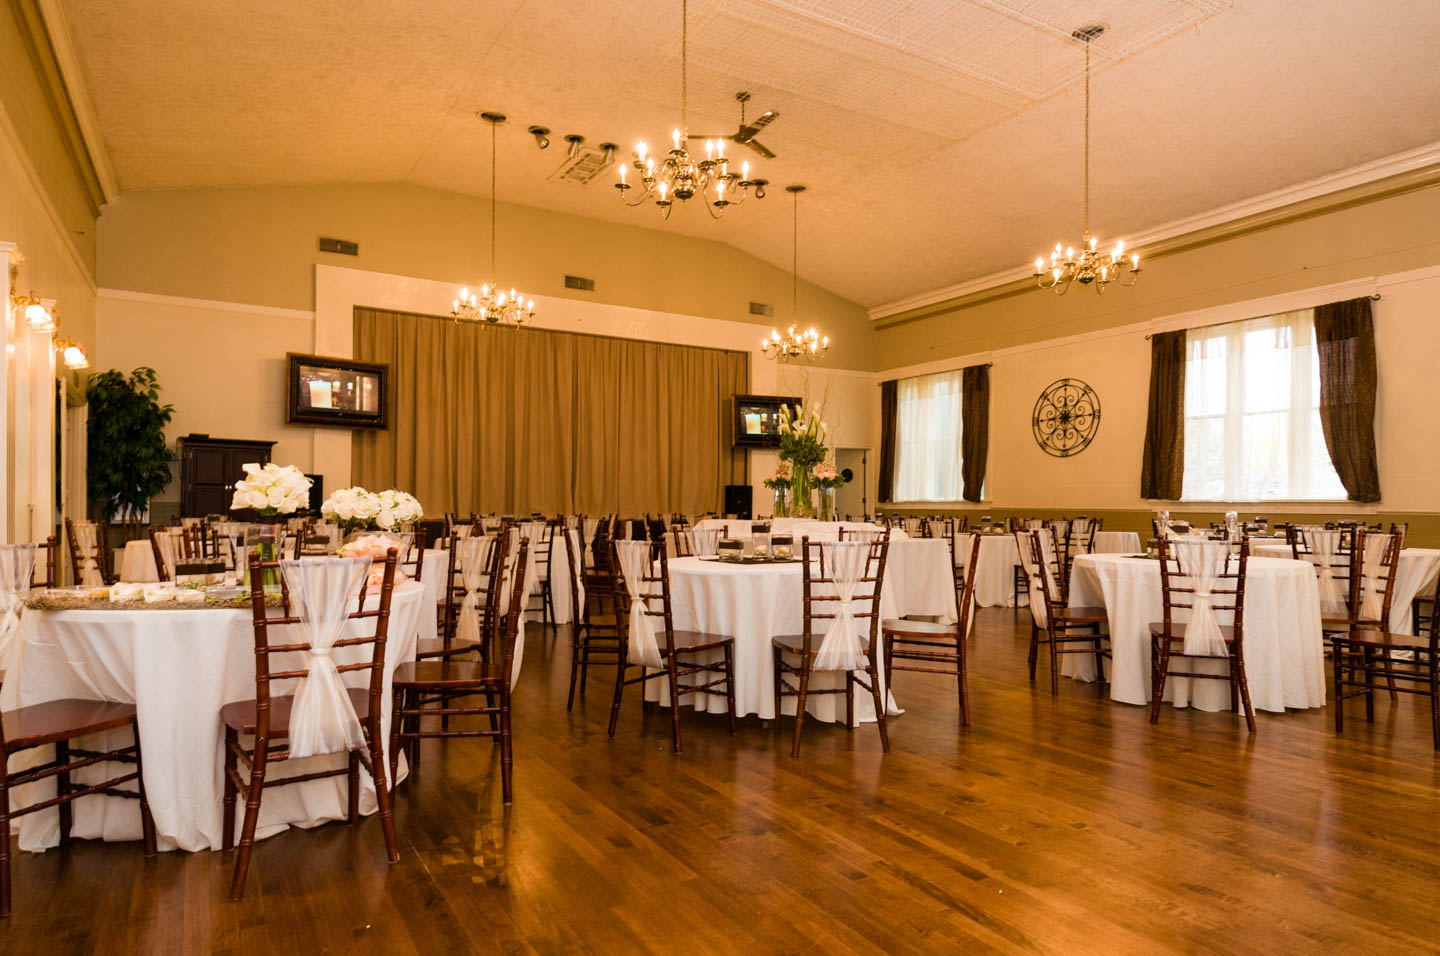 The Canterbury wedding reception hall